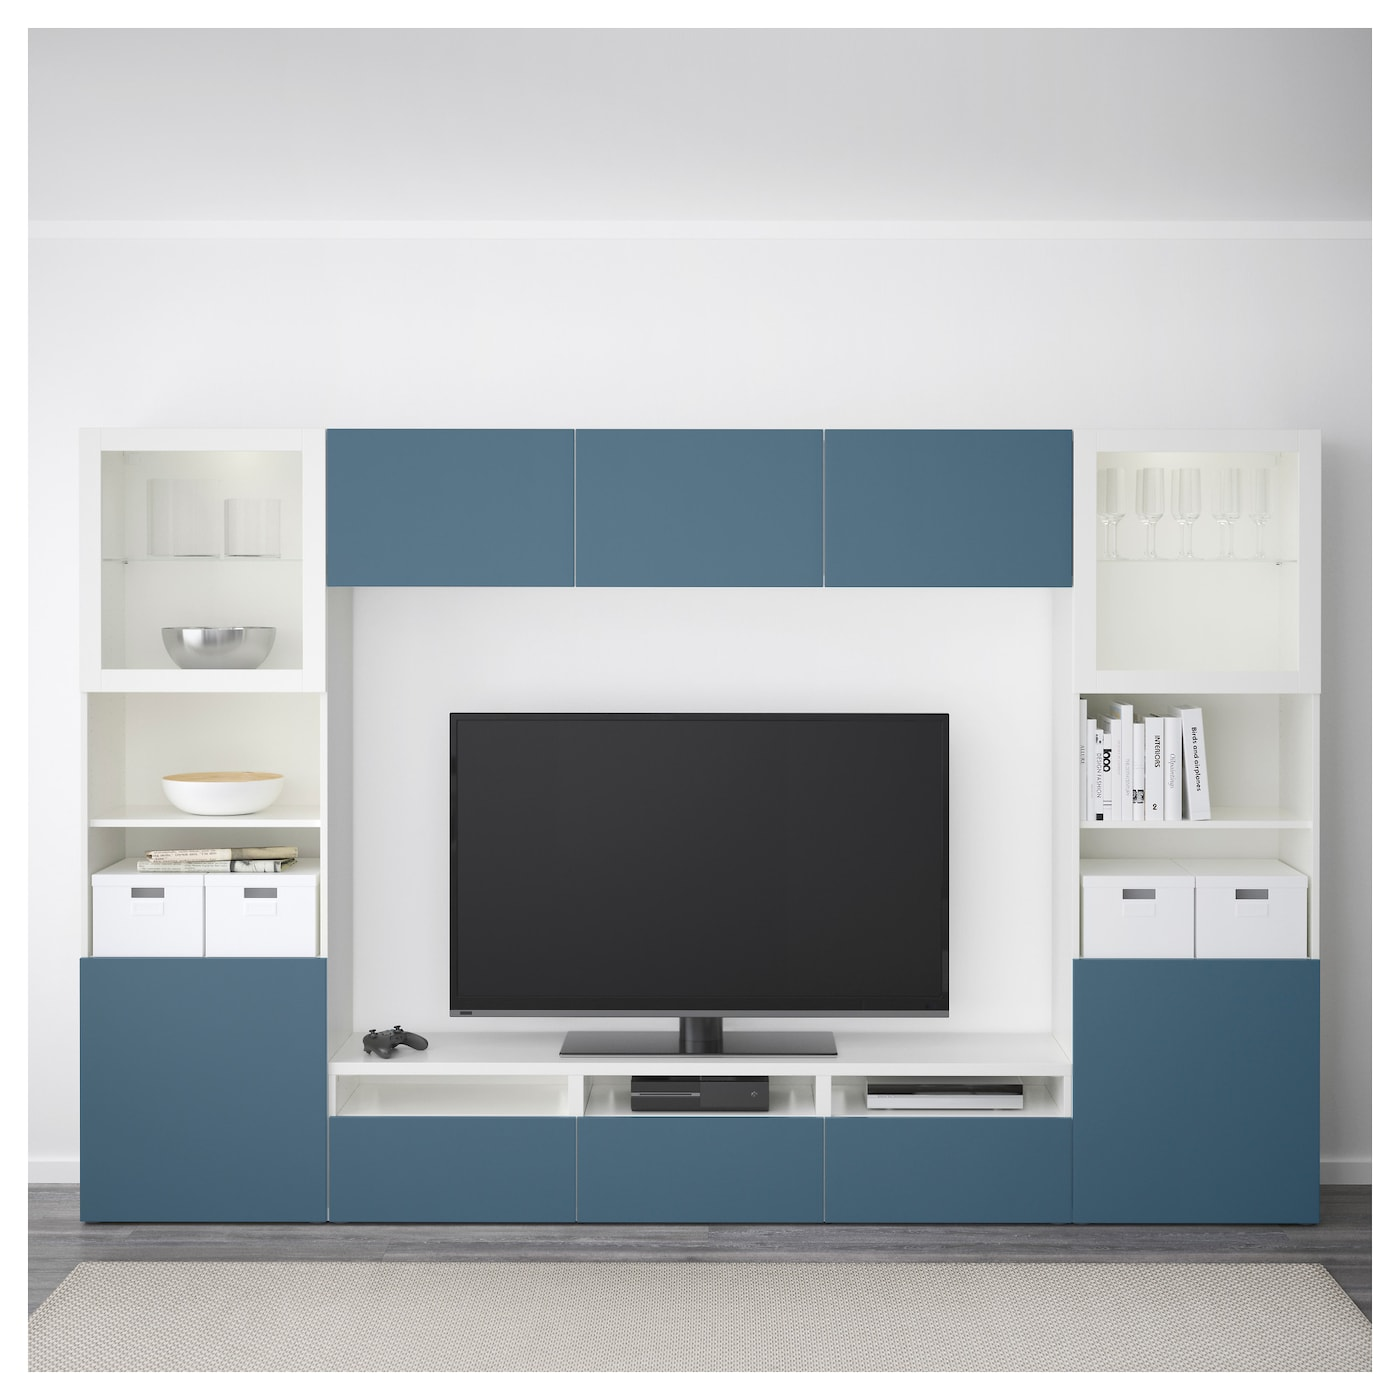 best combinaison rangt tv vitrines blanc valviken bleu fonc verre transparent 300x40x192 cm ikea. Black Bedroom Furniture Sets. Home Design Ideas